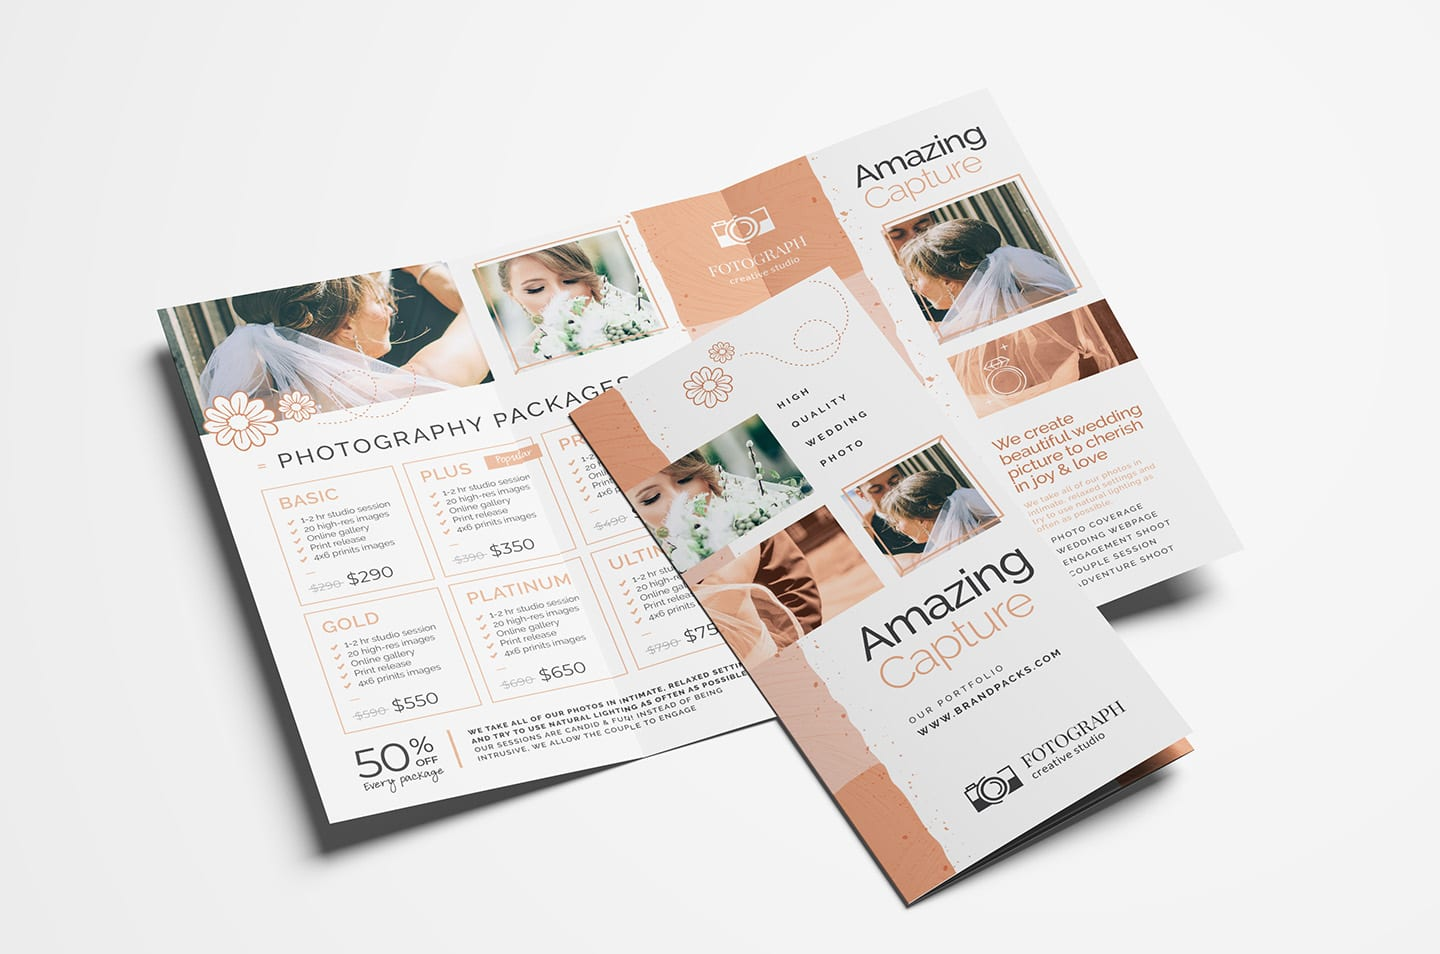 Photography Service Tri Fold Brochure Template Psd Vector